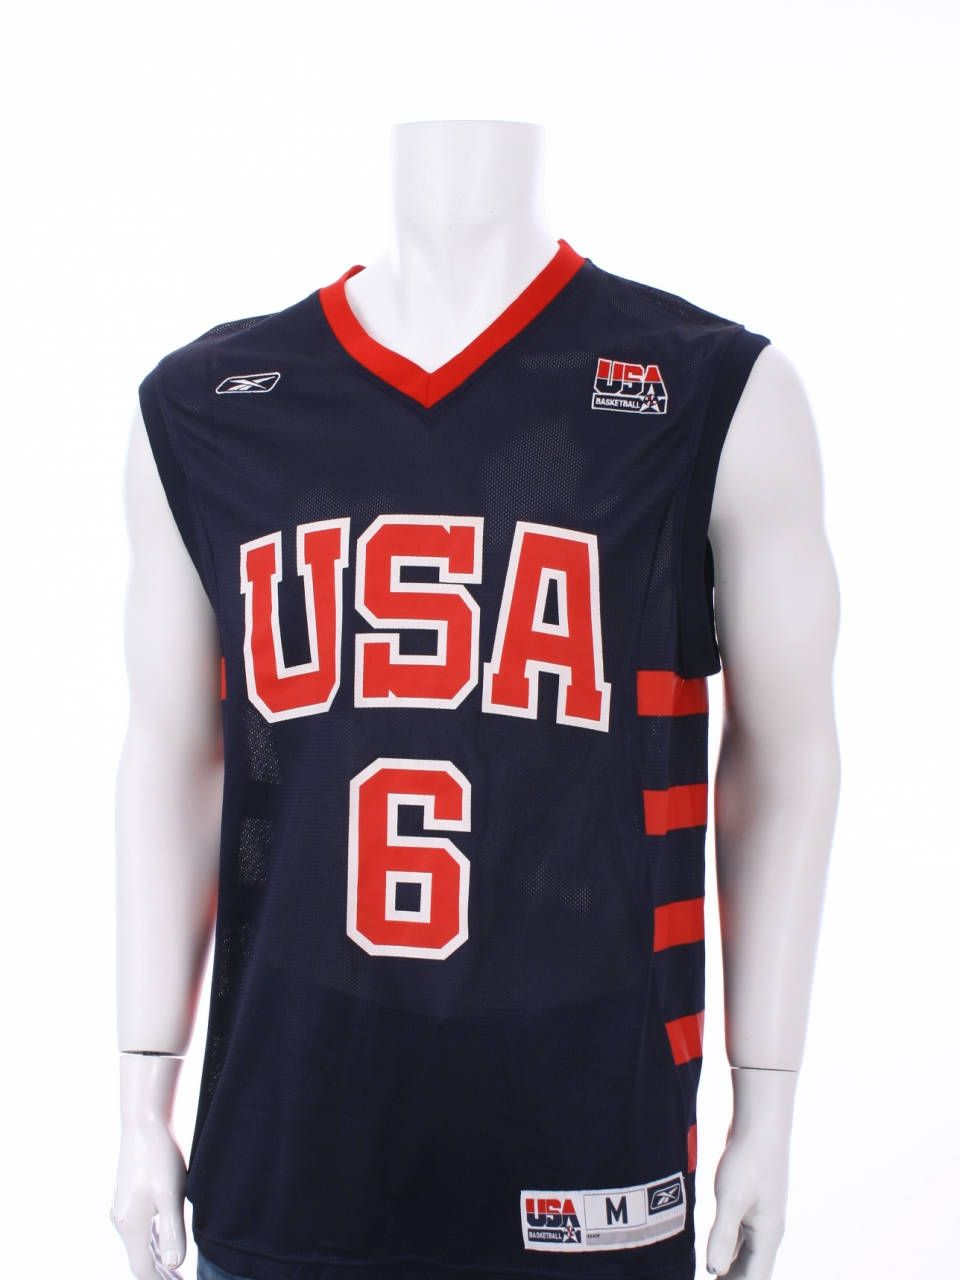 3e93bc8cb17 Vintage Tracy McGrady  6 USA Olympic Dream Team Basketball Reebok Jersey  Size M by VapeoVintage on Etsy